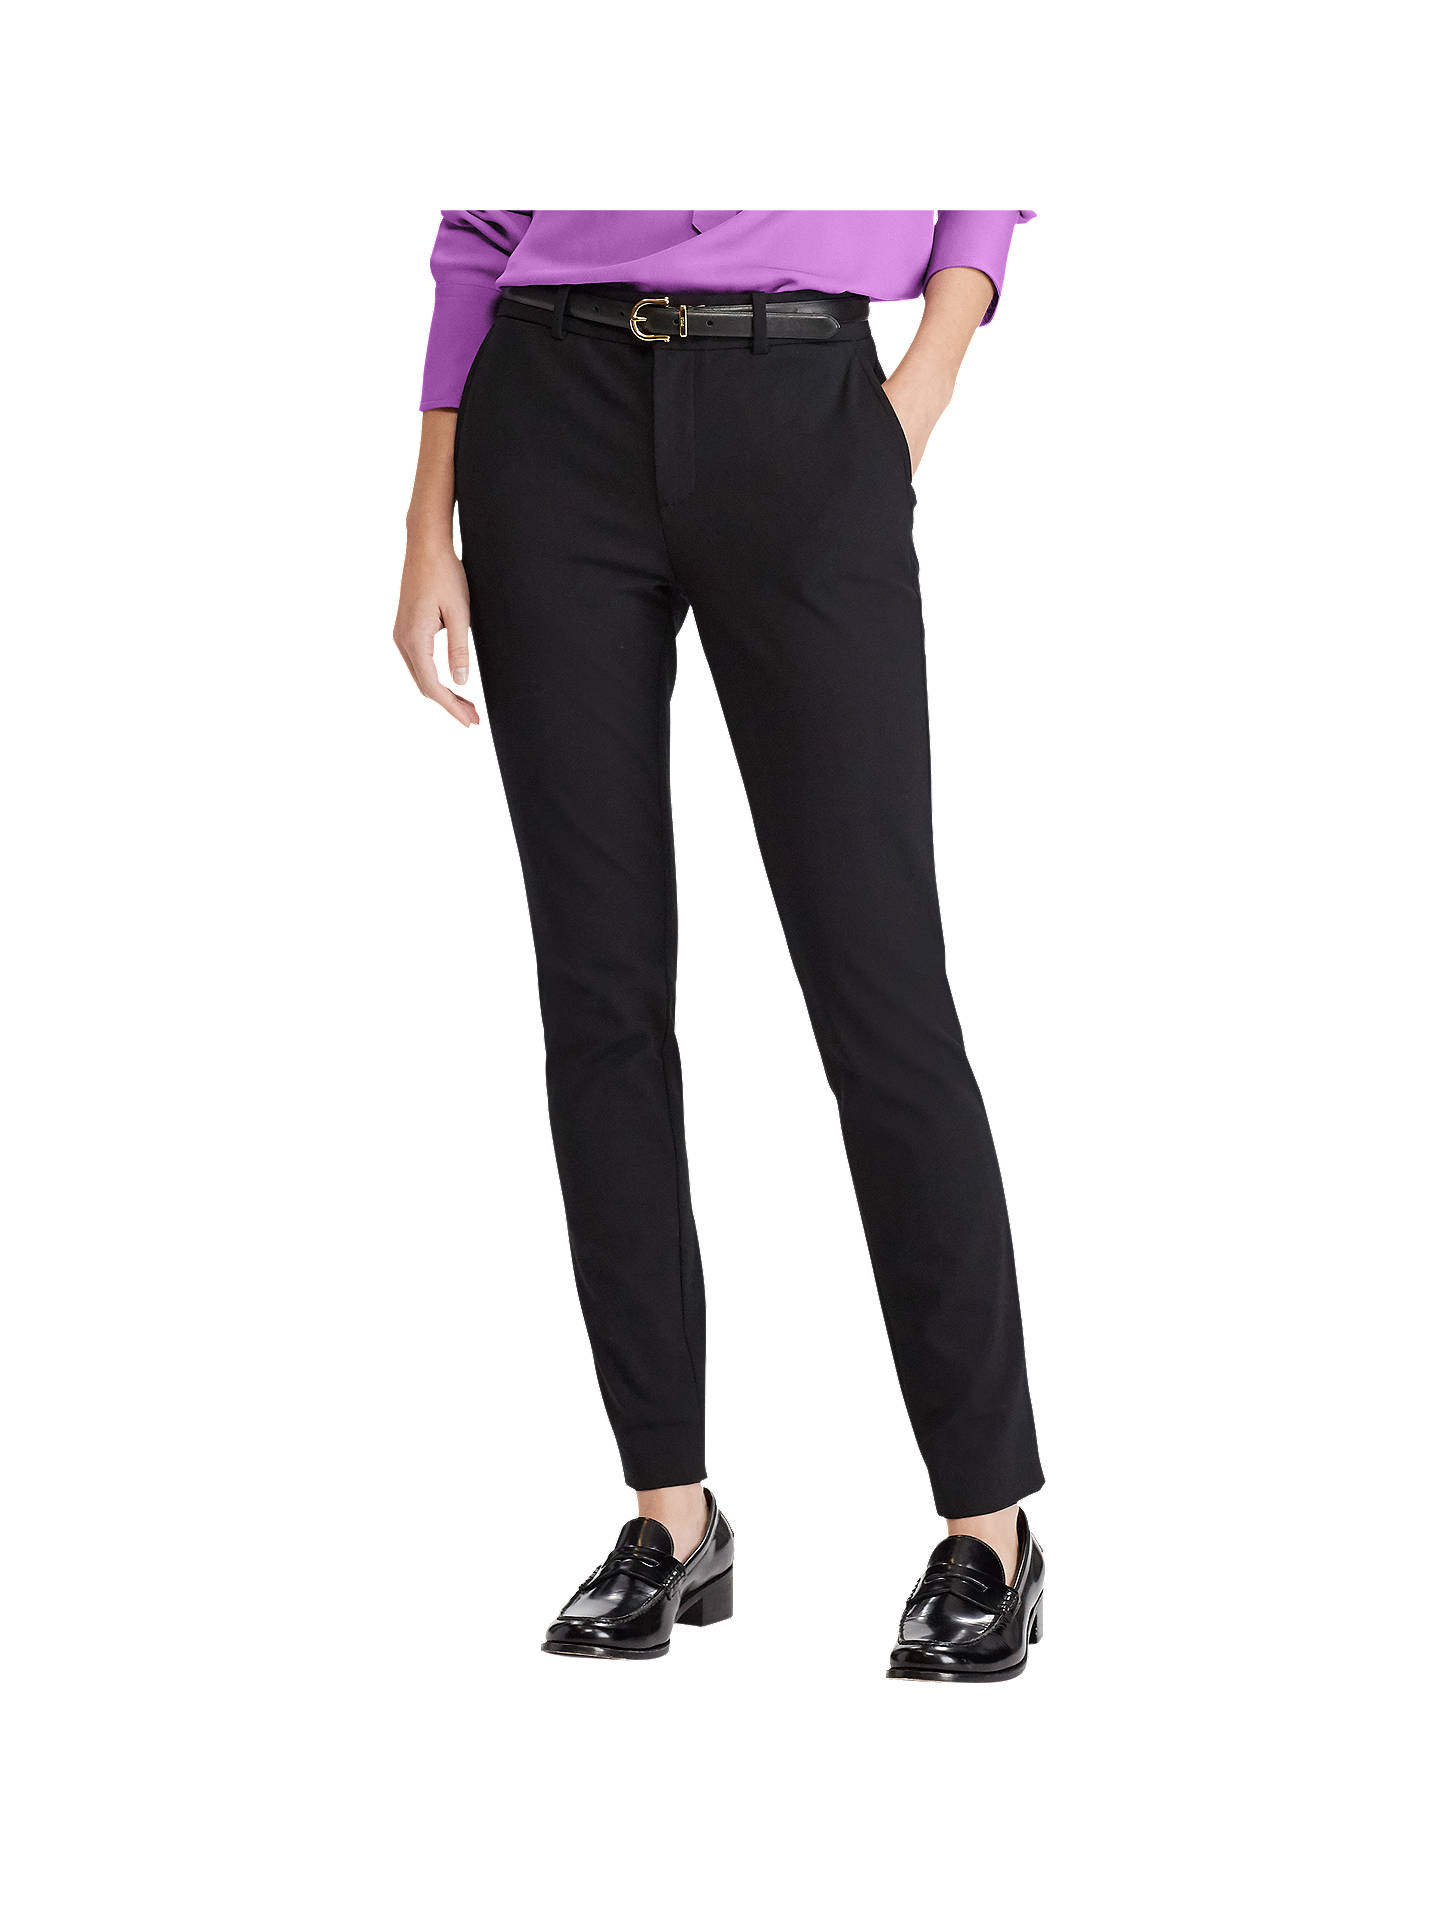 BuyPolo Ralph Lauren High Rise Twill Straight Trousers, Polo Black, 8 Online at johnlewis.com